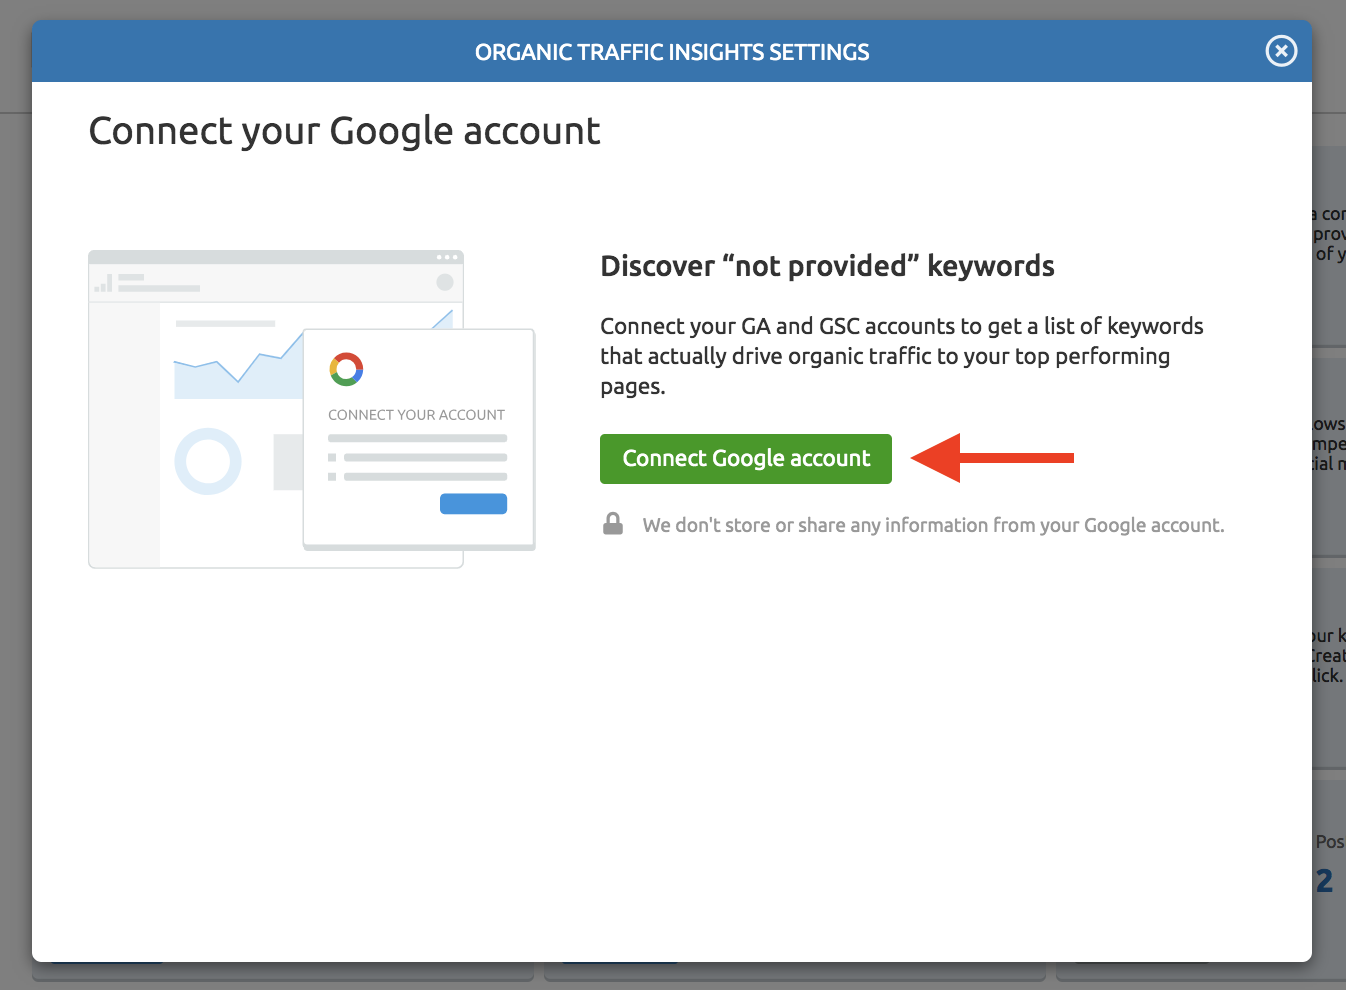 Connecting Organic Traffic Insights with Your Google Accounts image 2